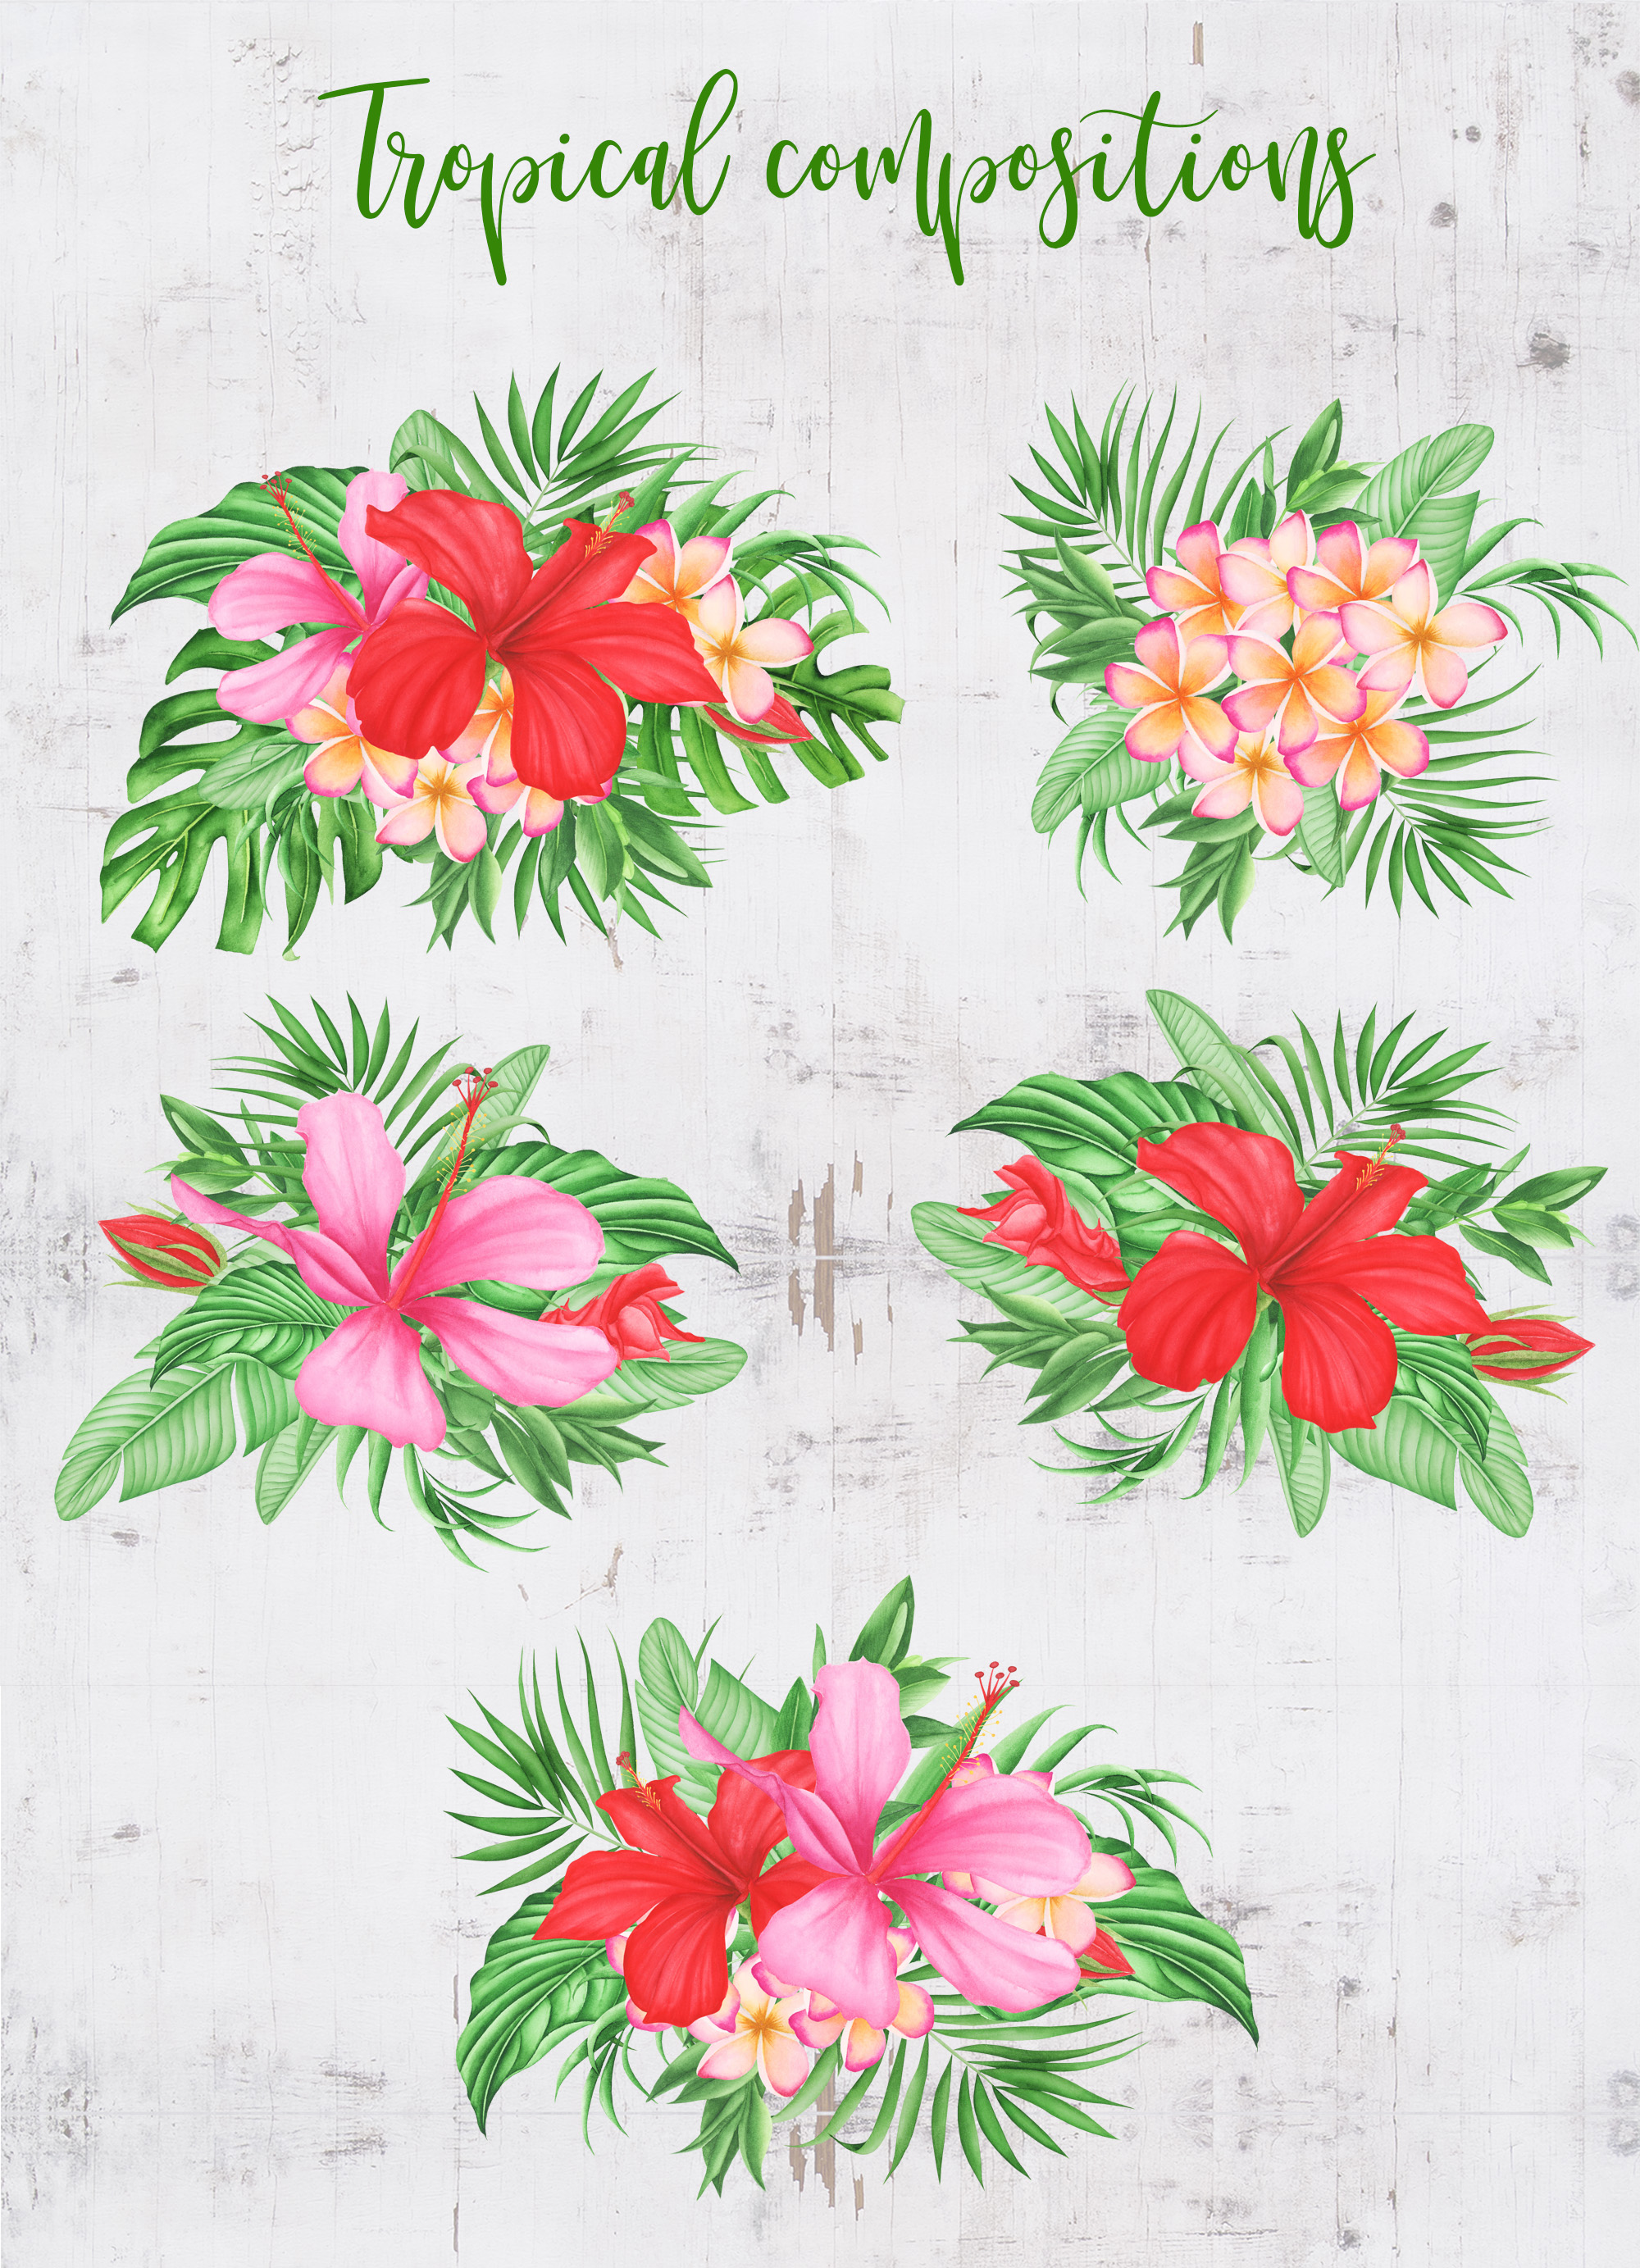 Tropical leaves and flowers clipart example image 4